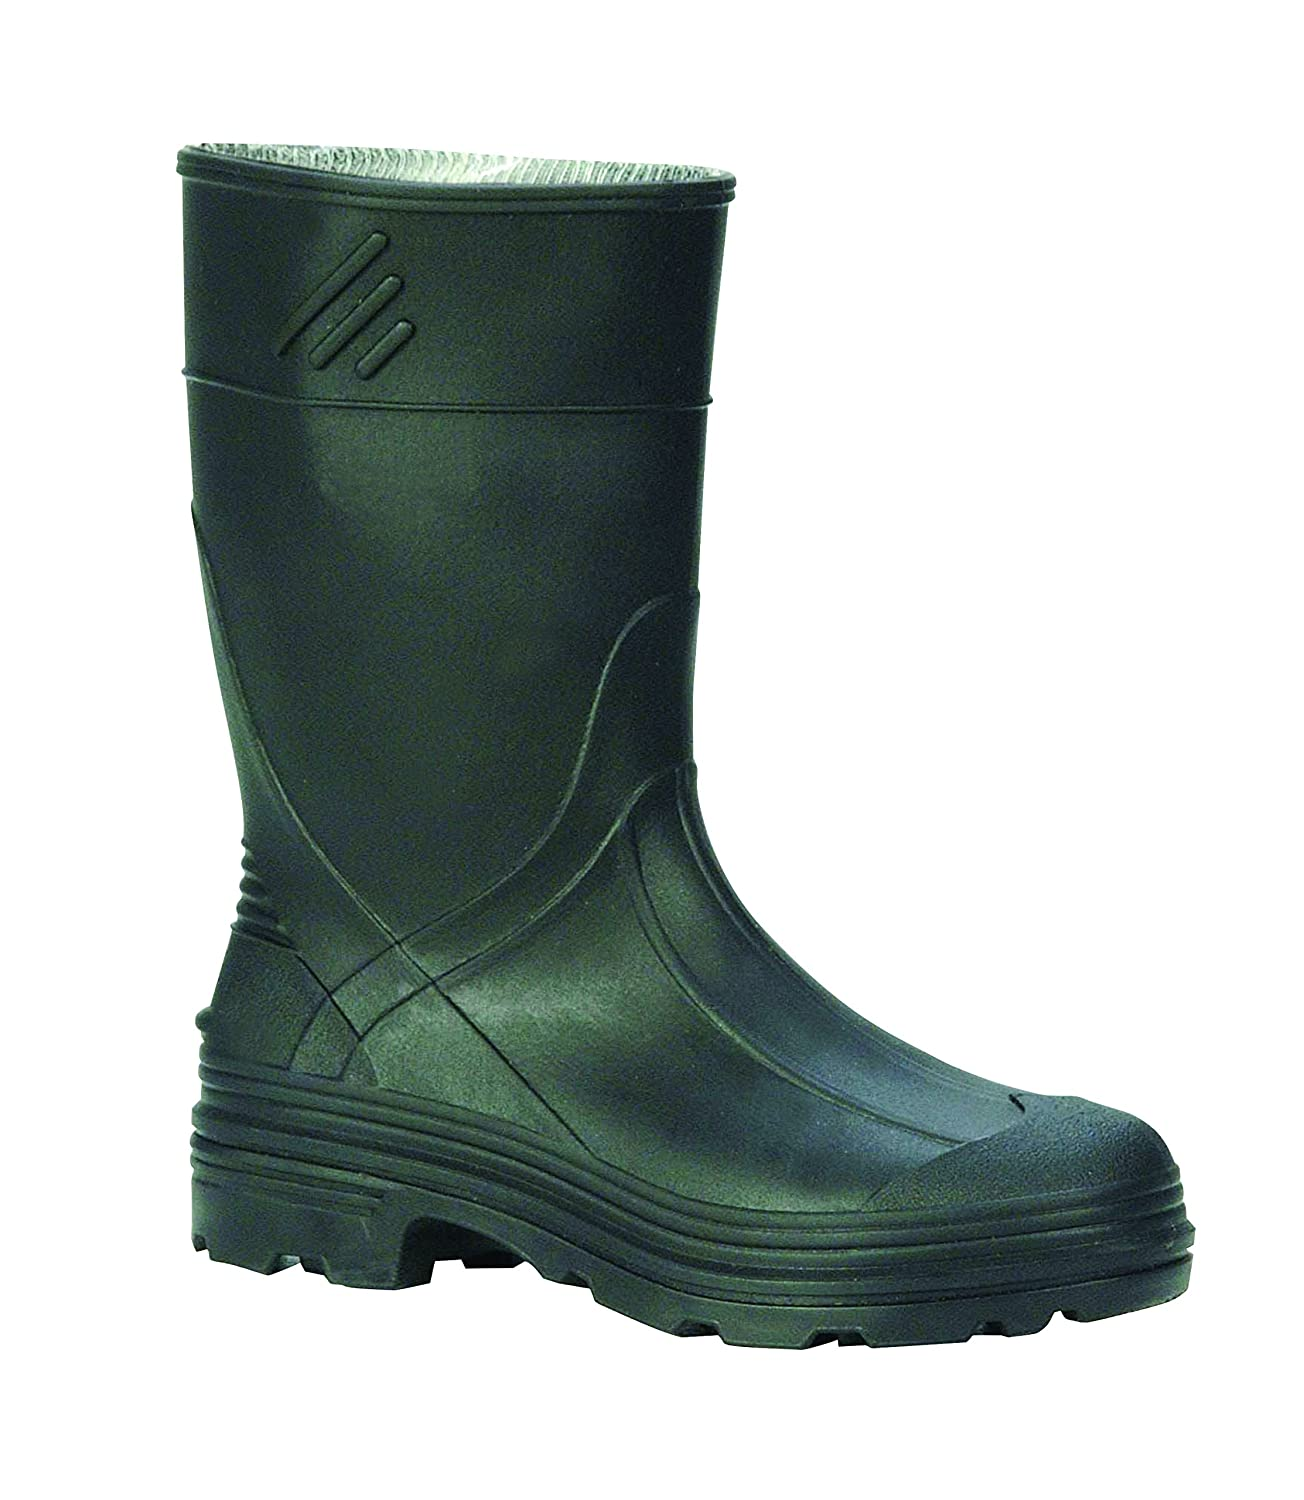 Ranger Splash Series Youths' Rain Boots, Black (76002) Honeywell Safety Products USA 76002-BLK-050